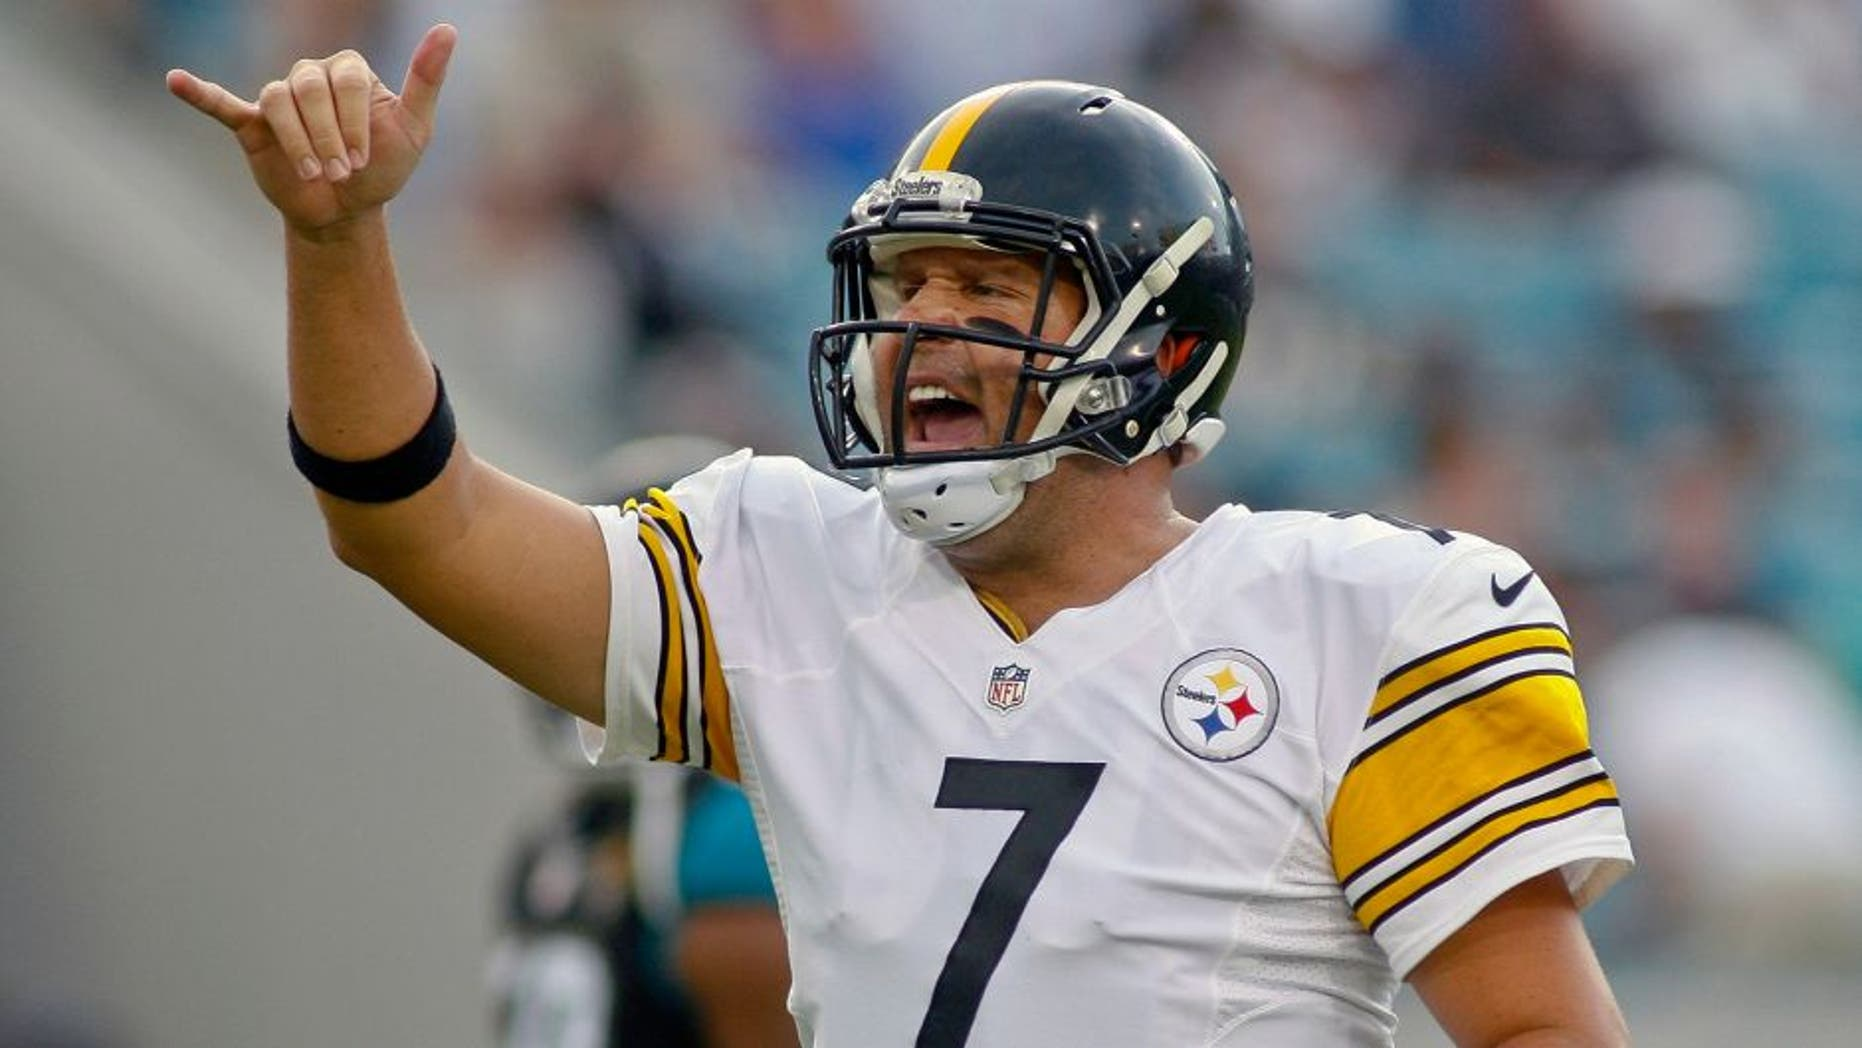 Aug 14, 2015; Jacksonville, FL, USA; Pittsburgh Steelers quarterback Ben Roethlisberger (7) signals to his team mates they are going for a two-point conversion in the first quarter of a preseason NFL football game against the Jacksonville Jaguars at EverBank Field. Mandatory Credit: Phil Sears-USA TODAY Sports